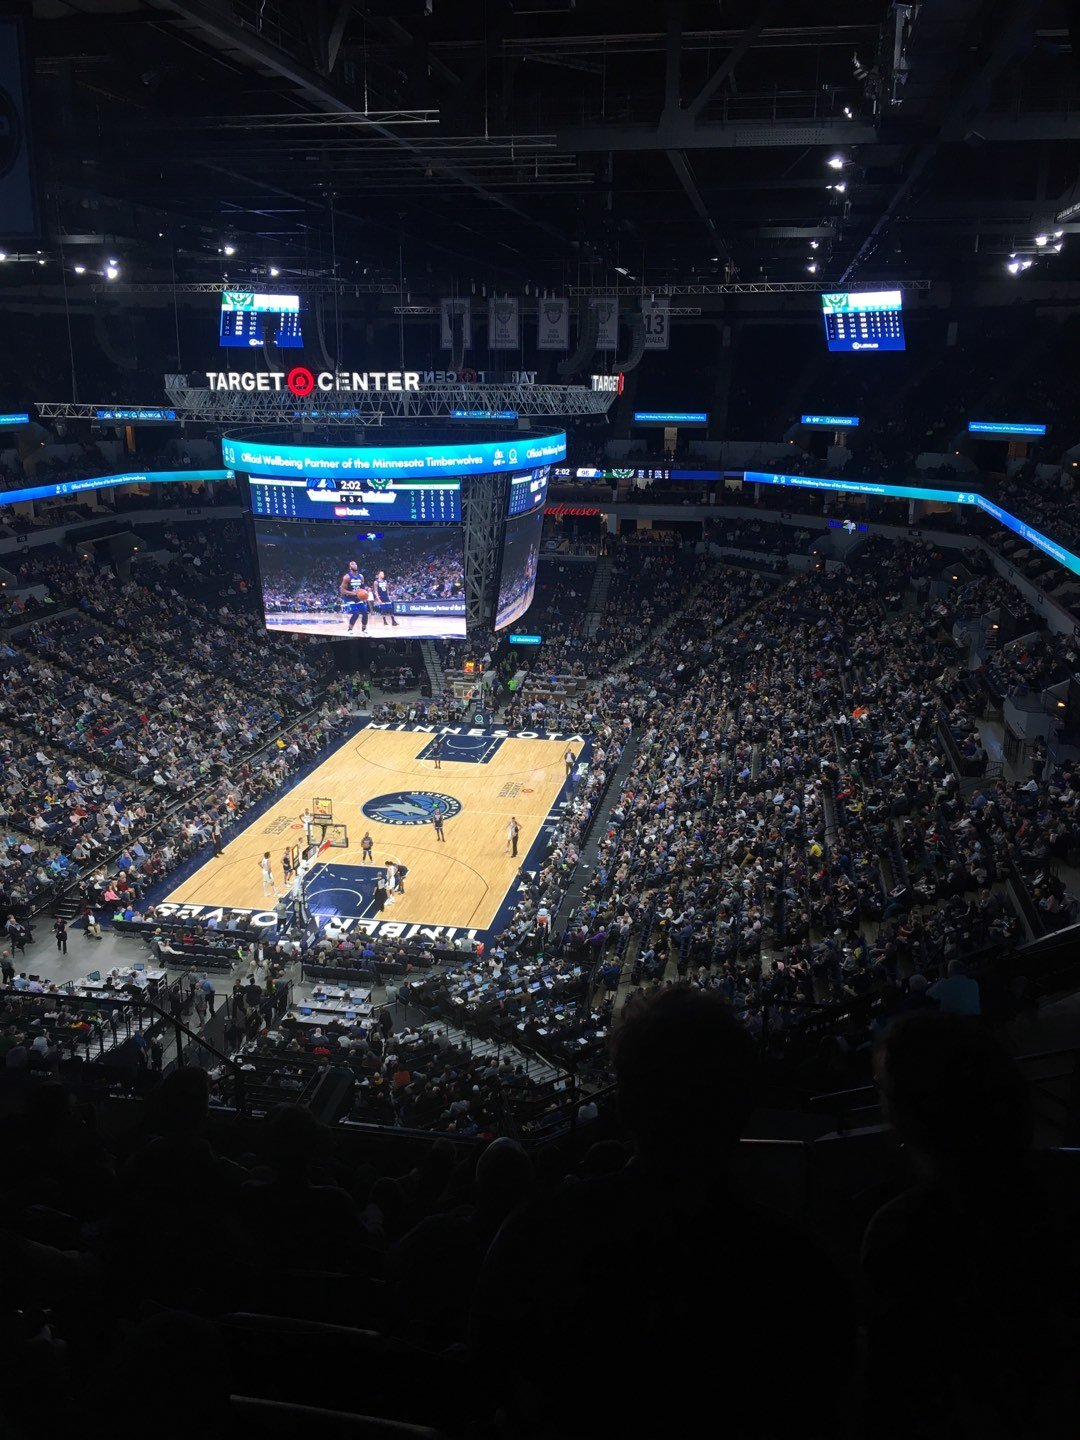 Target Center Section 239 Row Q Seat 4